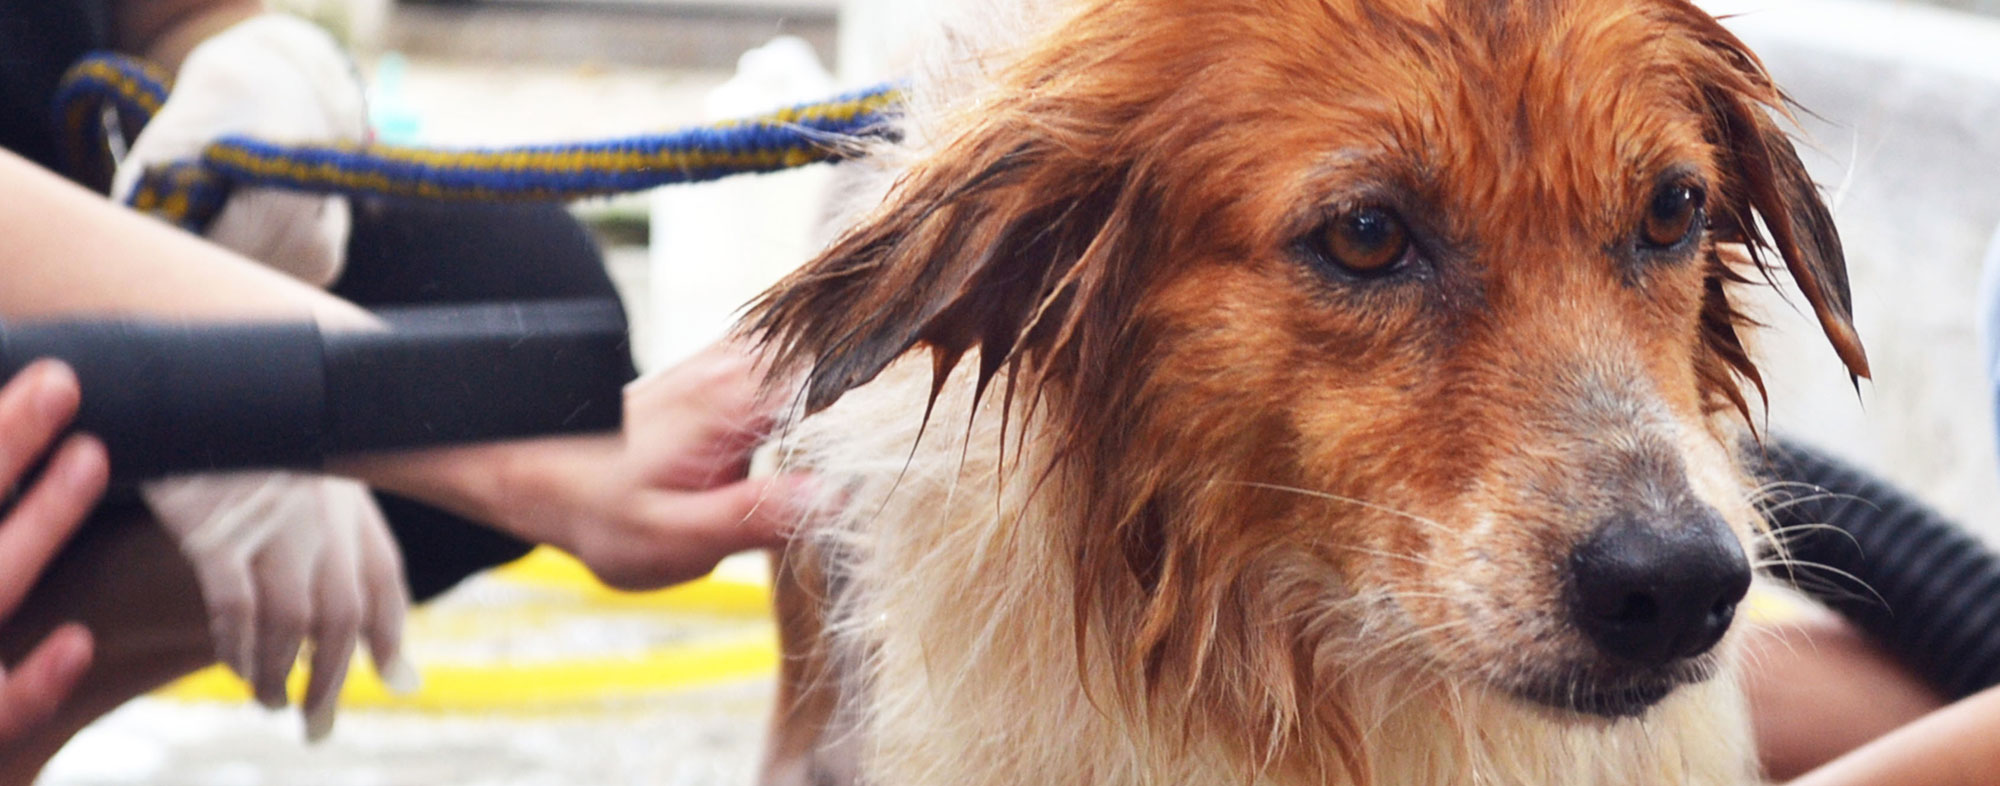 After leaving a dog grooming, your pooch will look fabulous